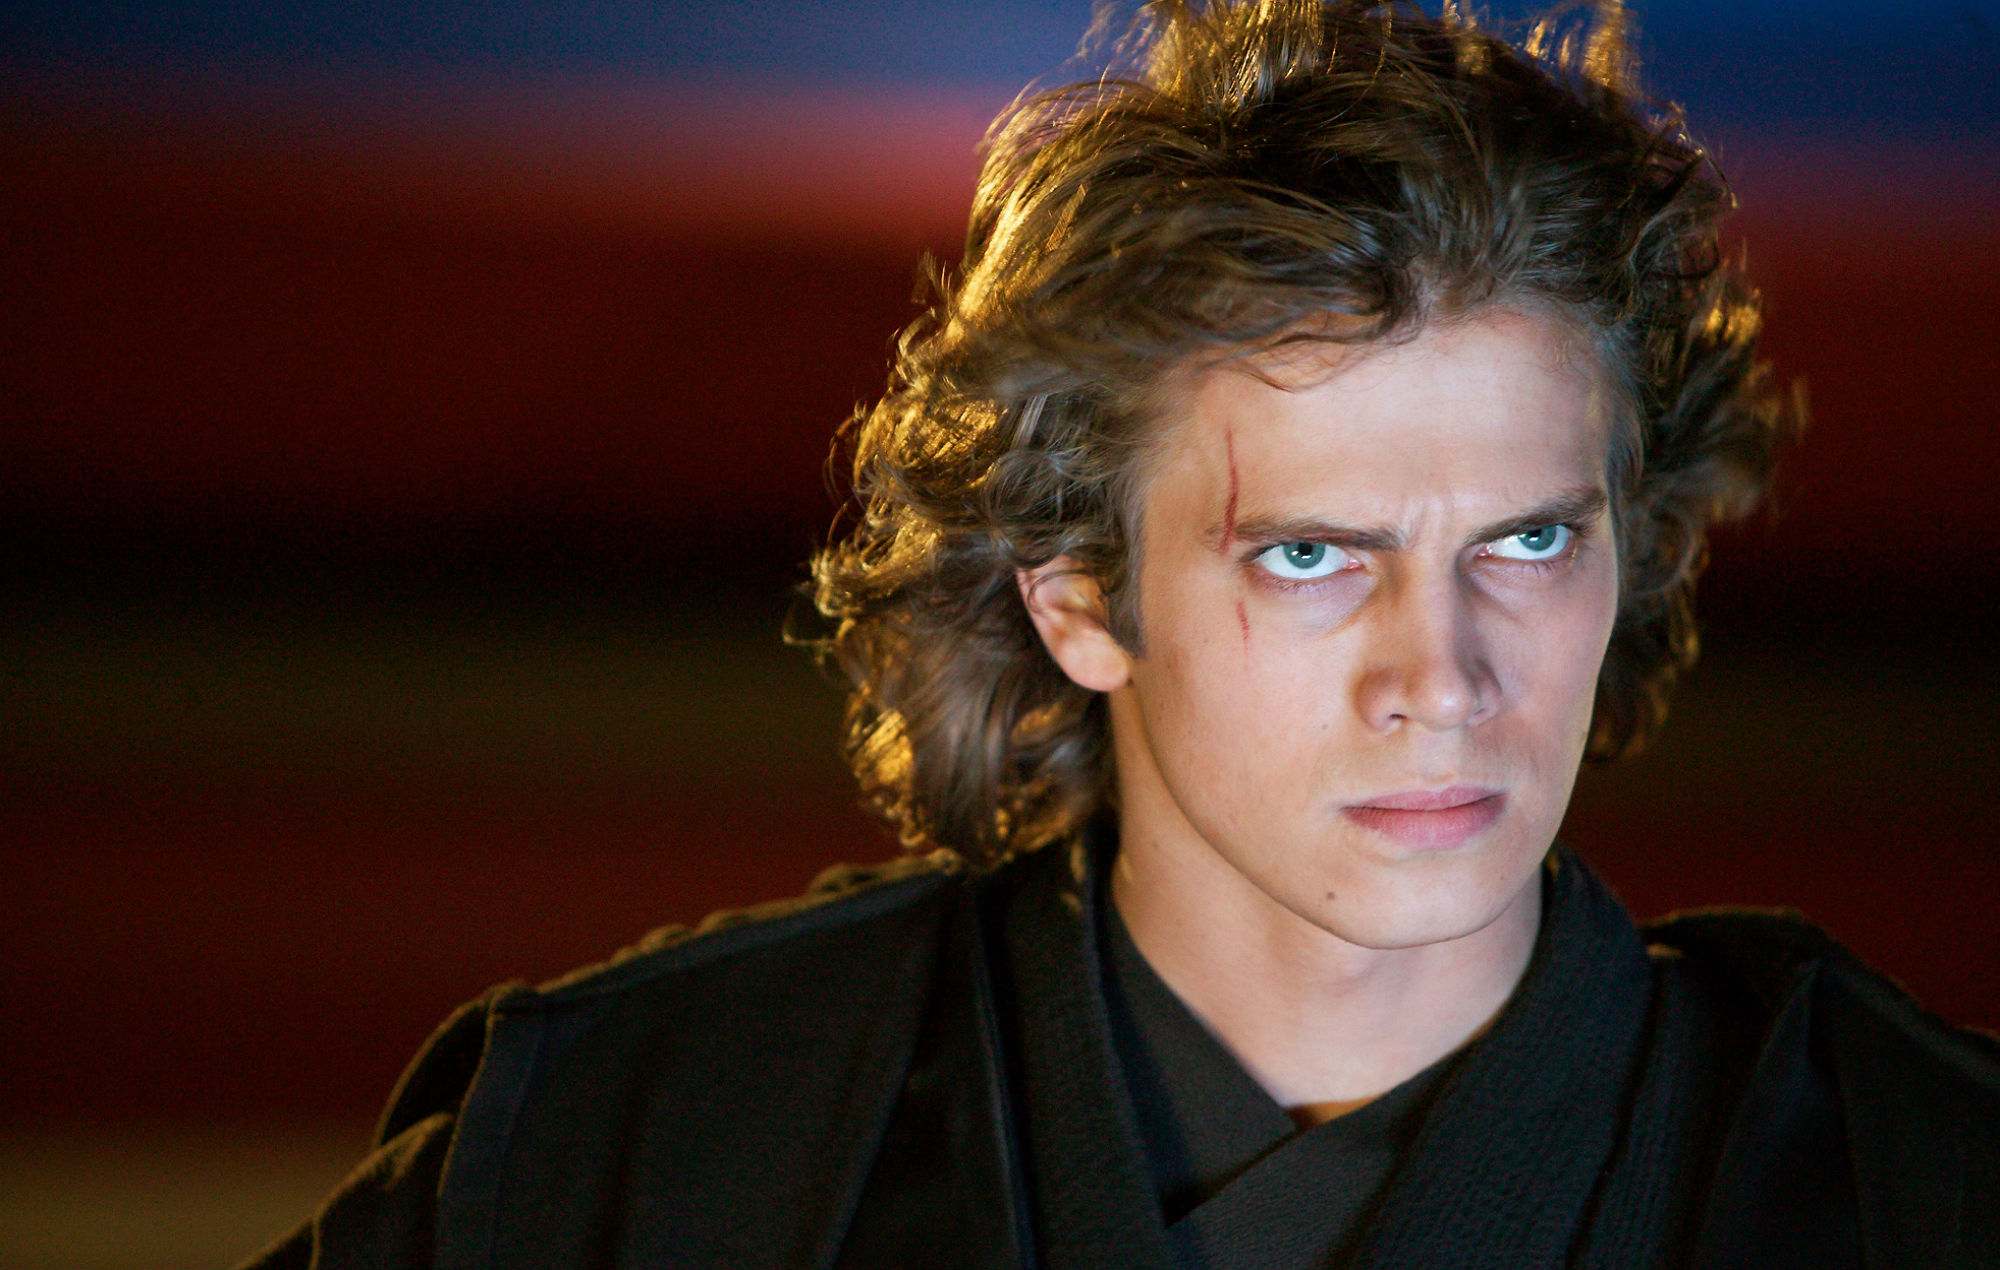 Star Wars fans think Anakin Skywalker will return in 'The Rise of Skywalker' after Disney cancels panel